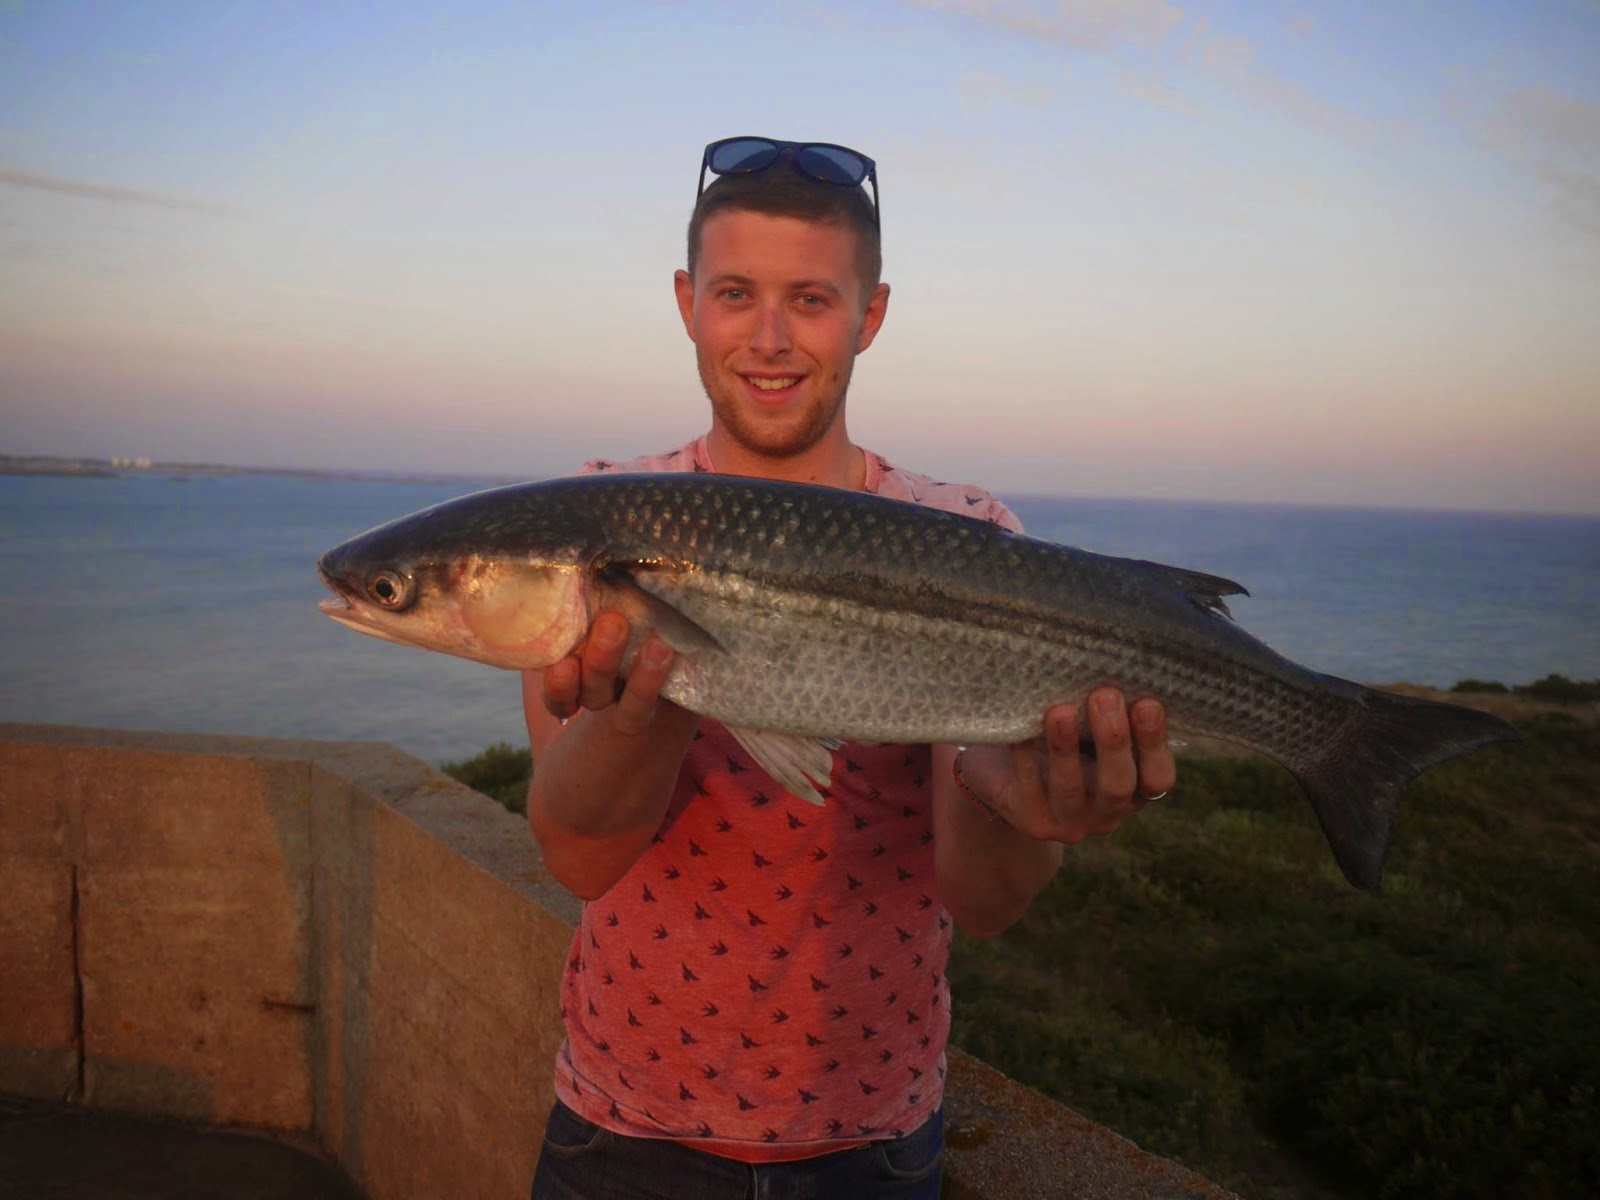 6lb 6oz Thin Lipped Mullet - Channel Island Record!